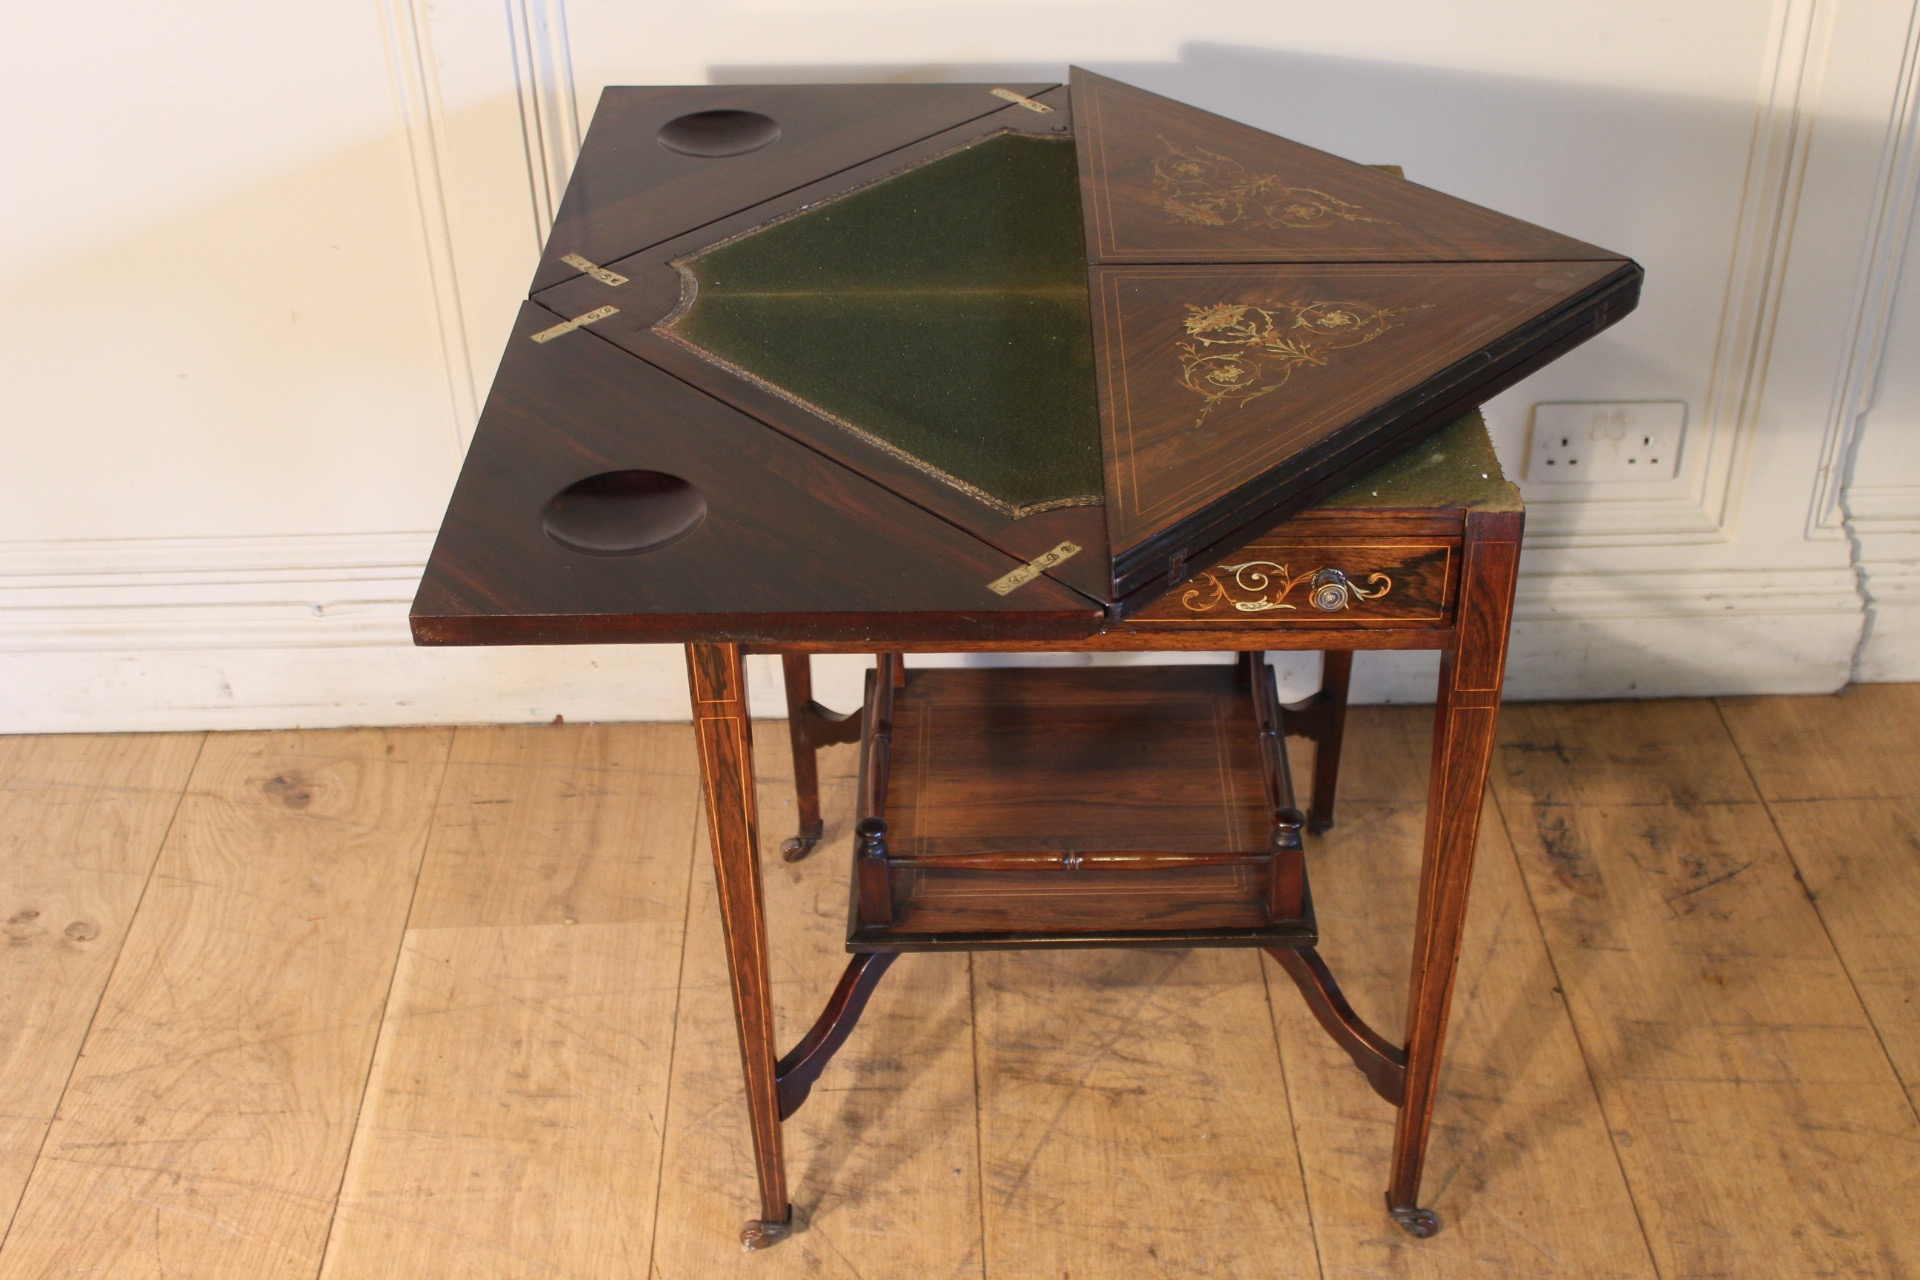 SOLD/EDWARDIAN PERIOD INLAID ROSEWOOD ENVELOPE CARD TABLE